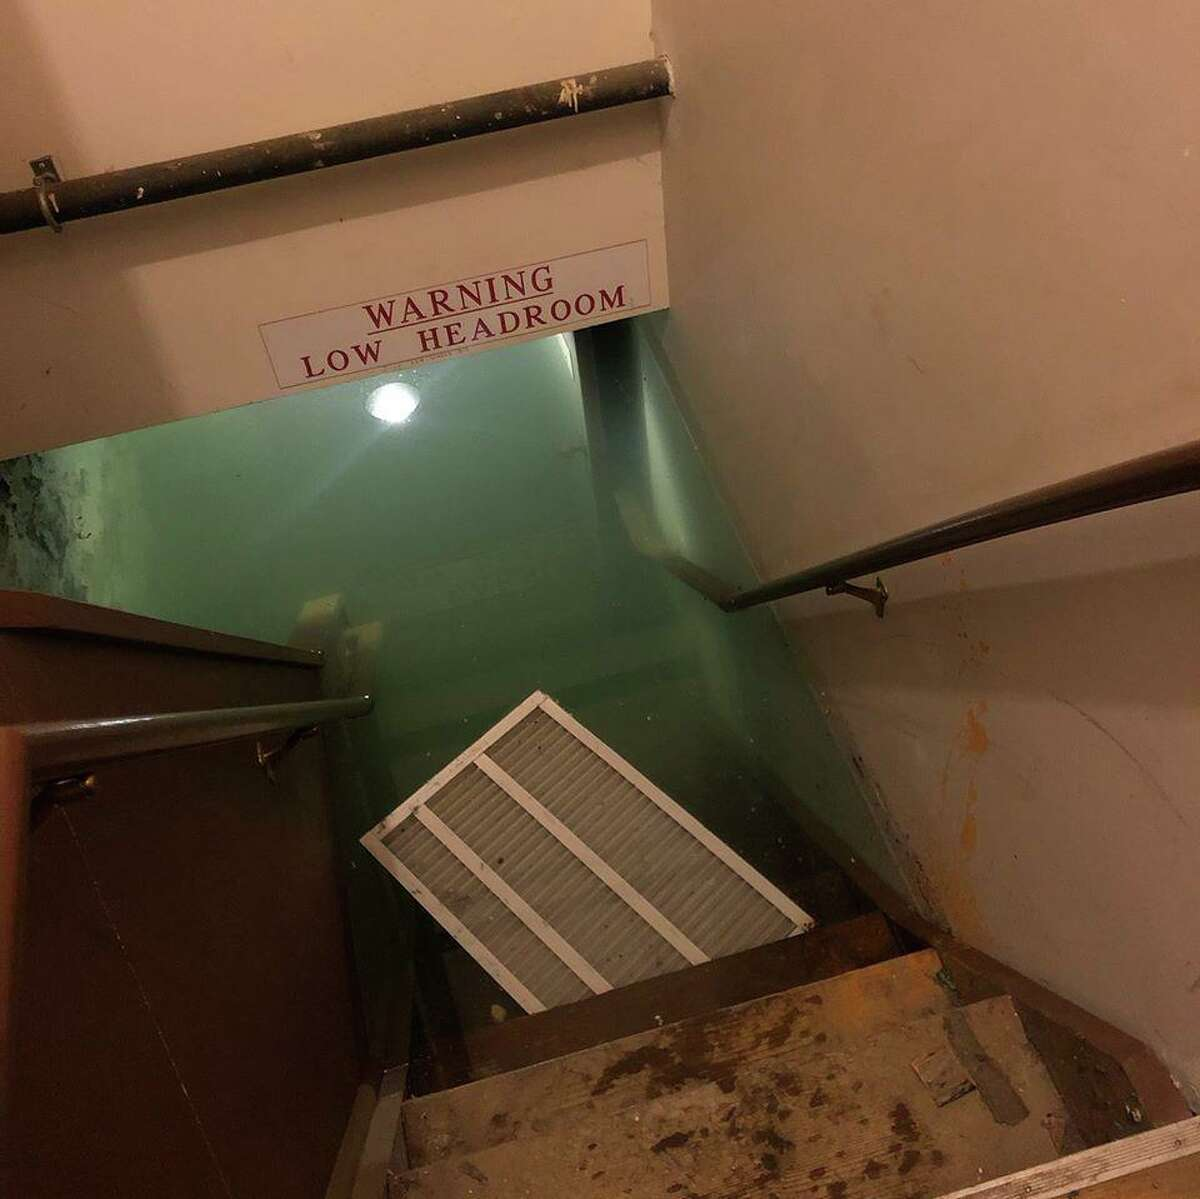 The Danbury Railway Museum's basement was flooded with seven feet of water on Monday, Dec. 2, 2019.